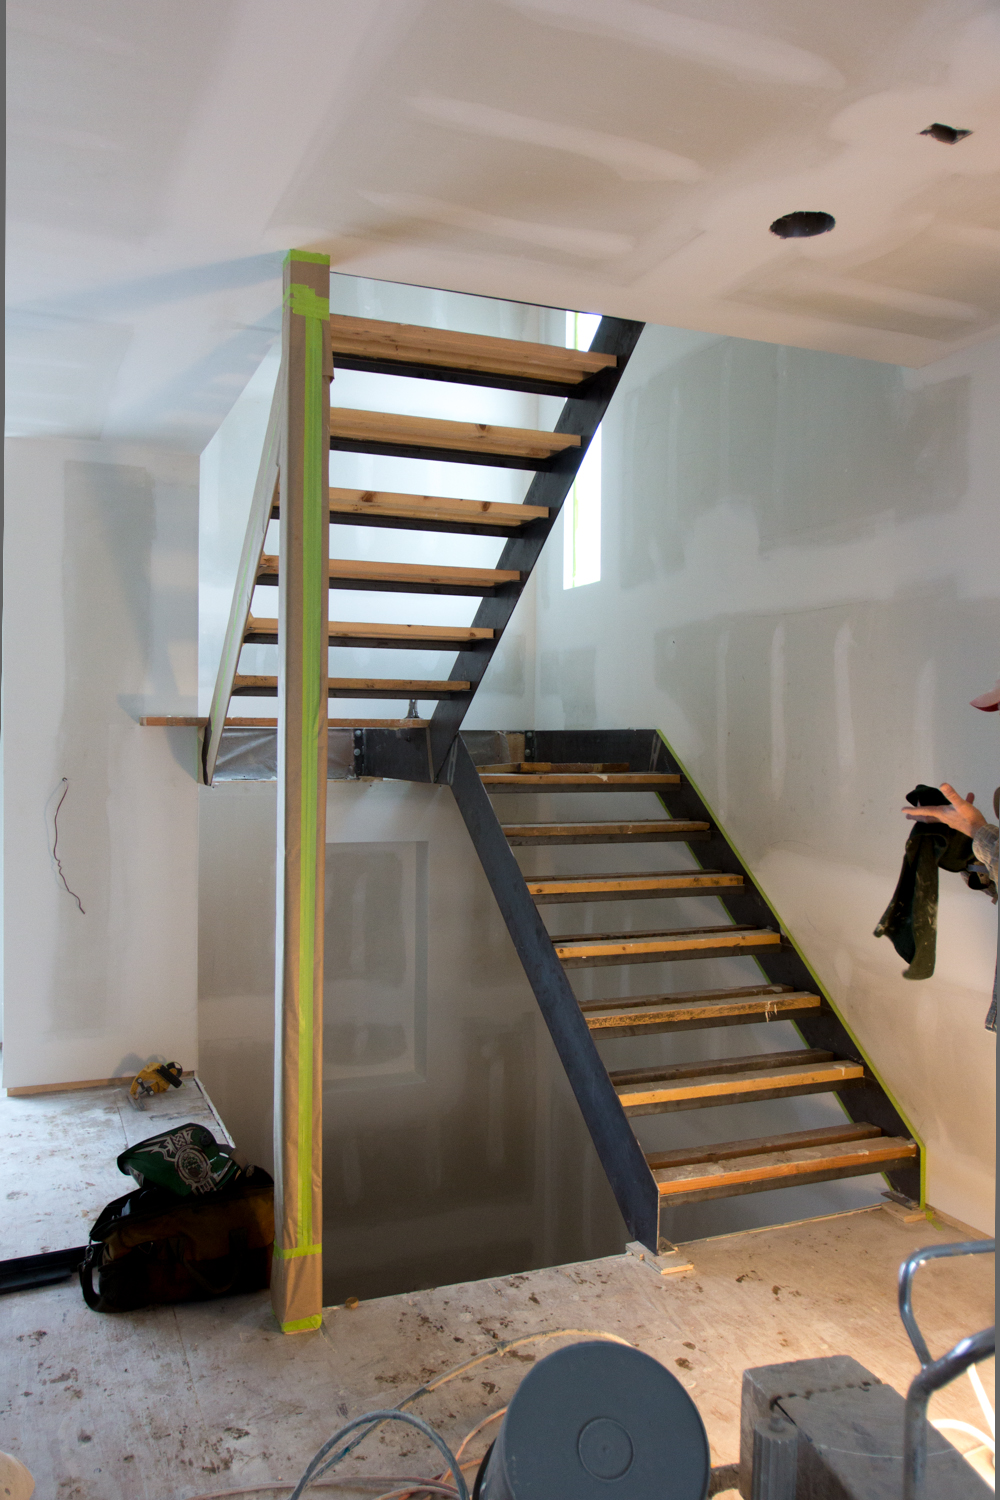 studio build_1127 residence stair.jpg